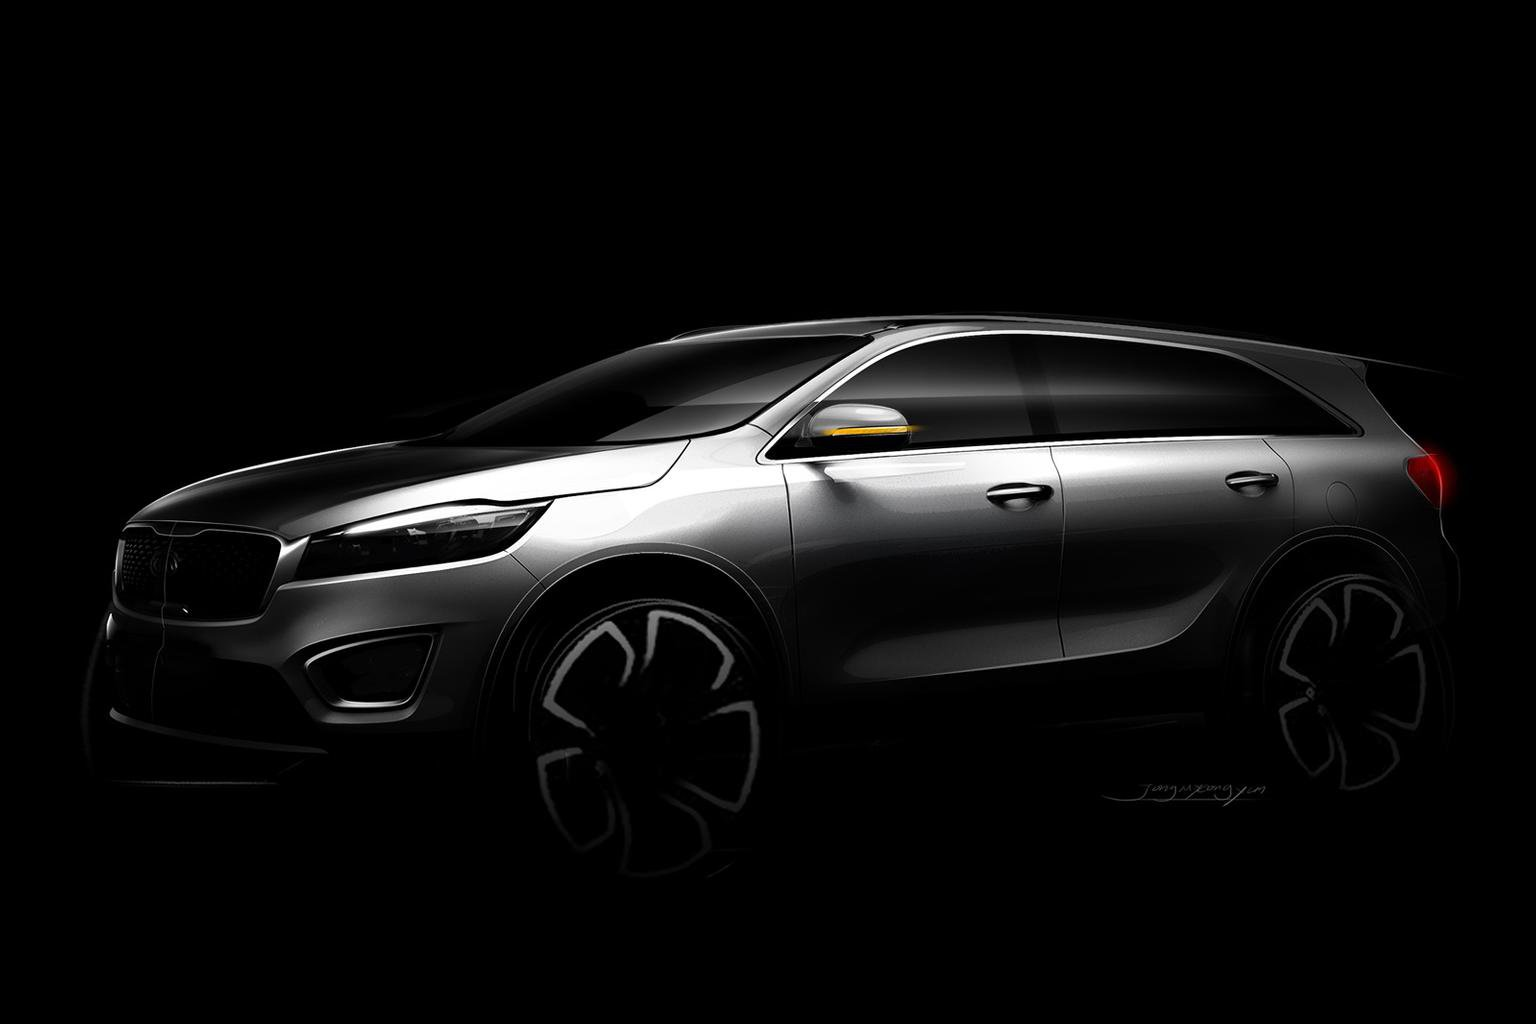 Kia Sorento revealed in early pictures